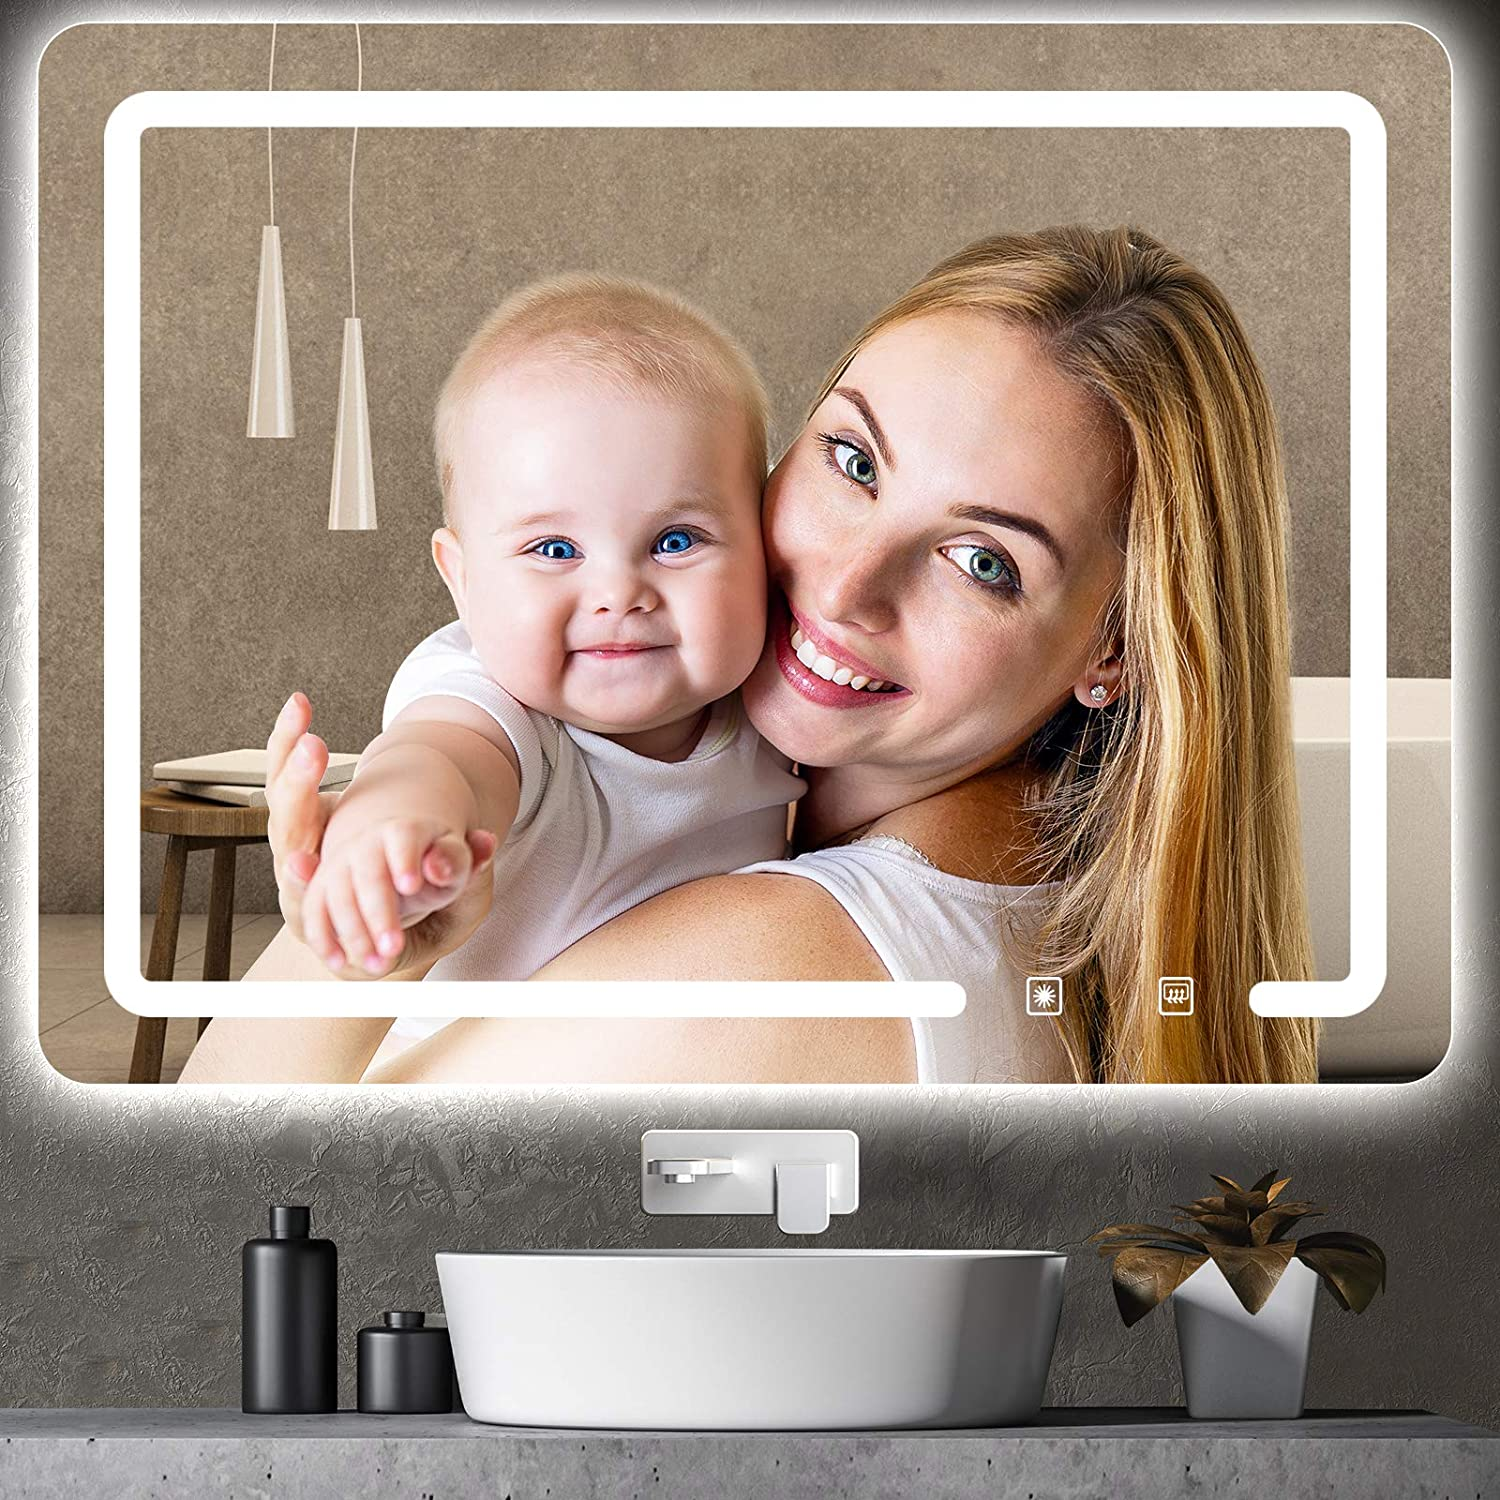 ROTTOGOON 32x24 Inch LED Lighted Bathroom Mirror, Wall Mounted Vanity Mirror with Light Color Adjustable, Stepless Dimming Light, Anti-Fog and Memory Function for Horizontal and Vertical Hanging